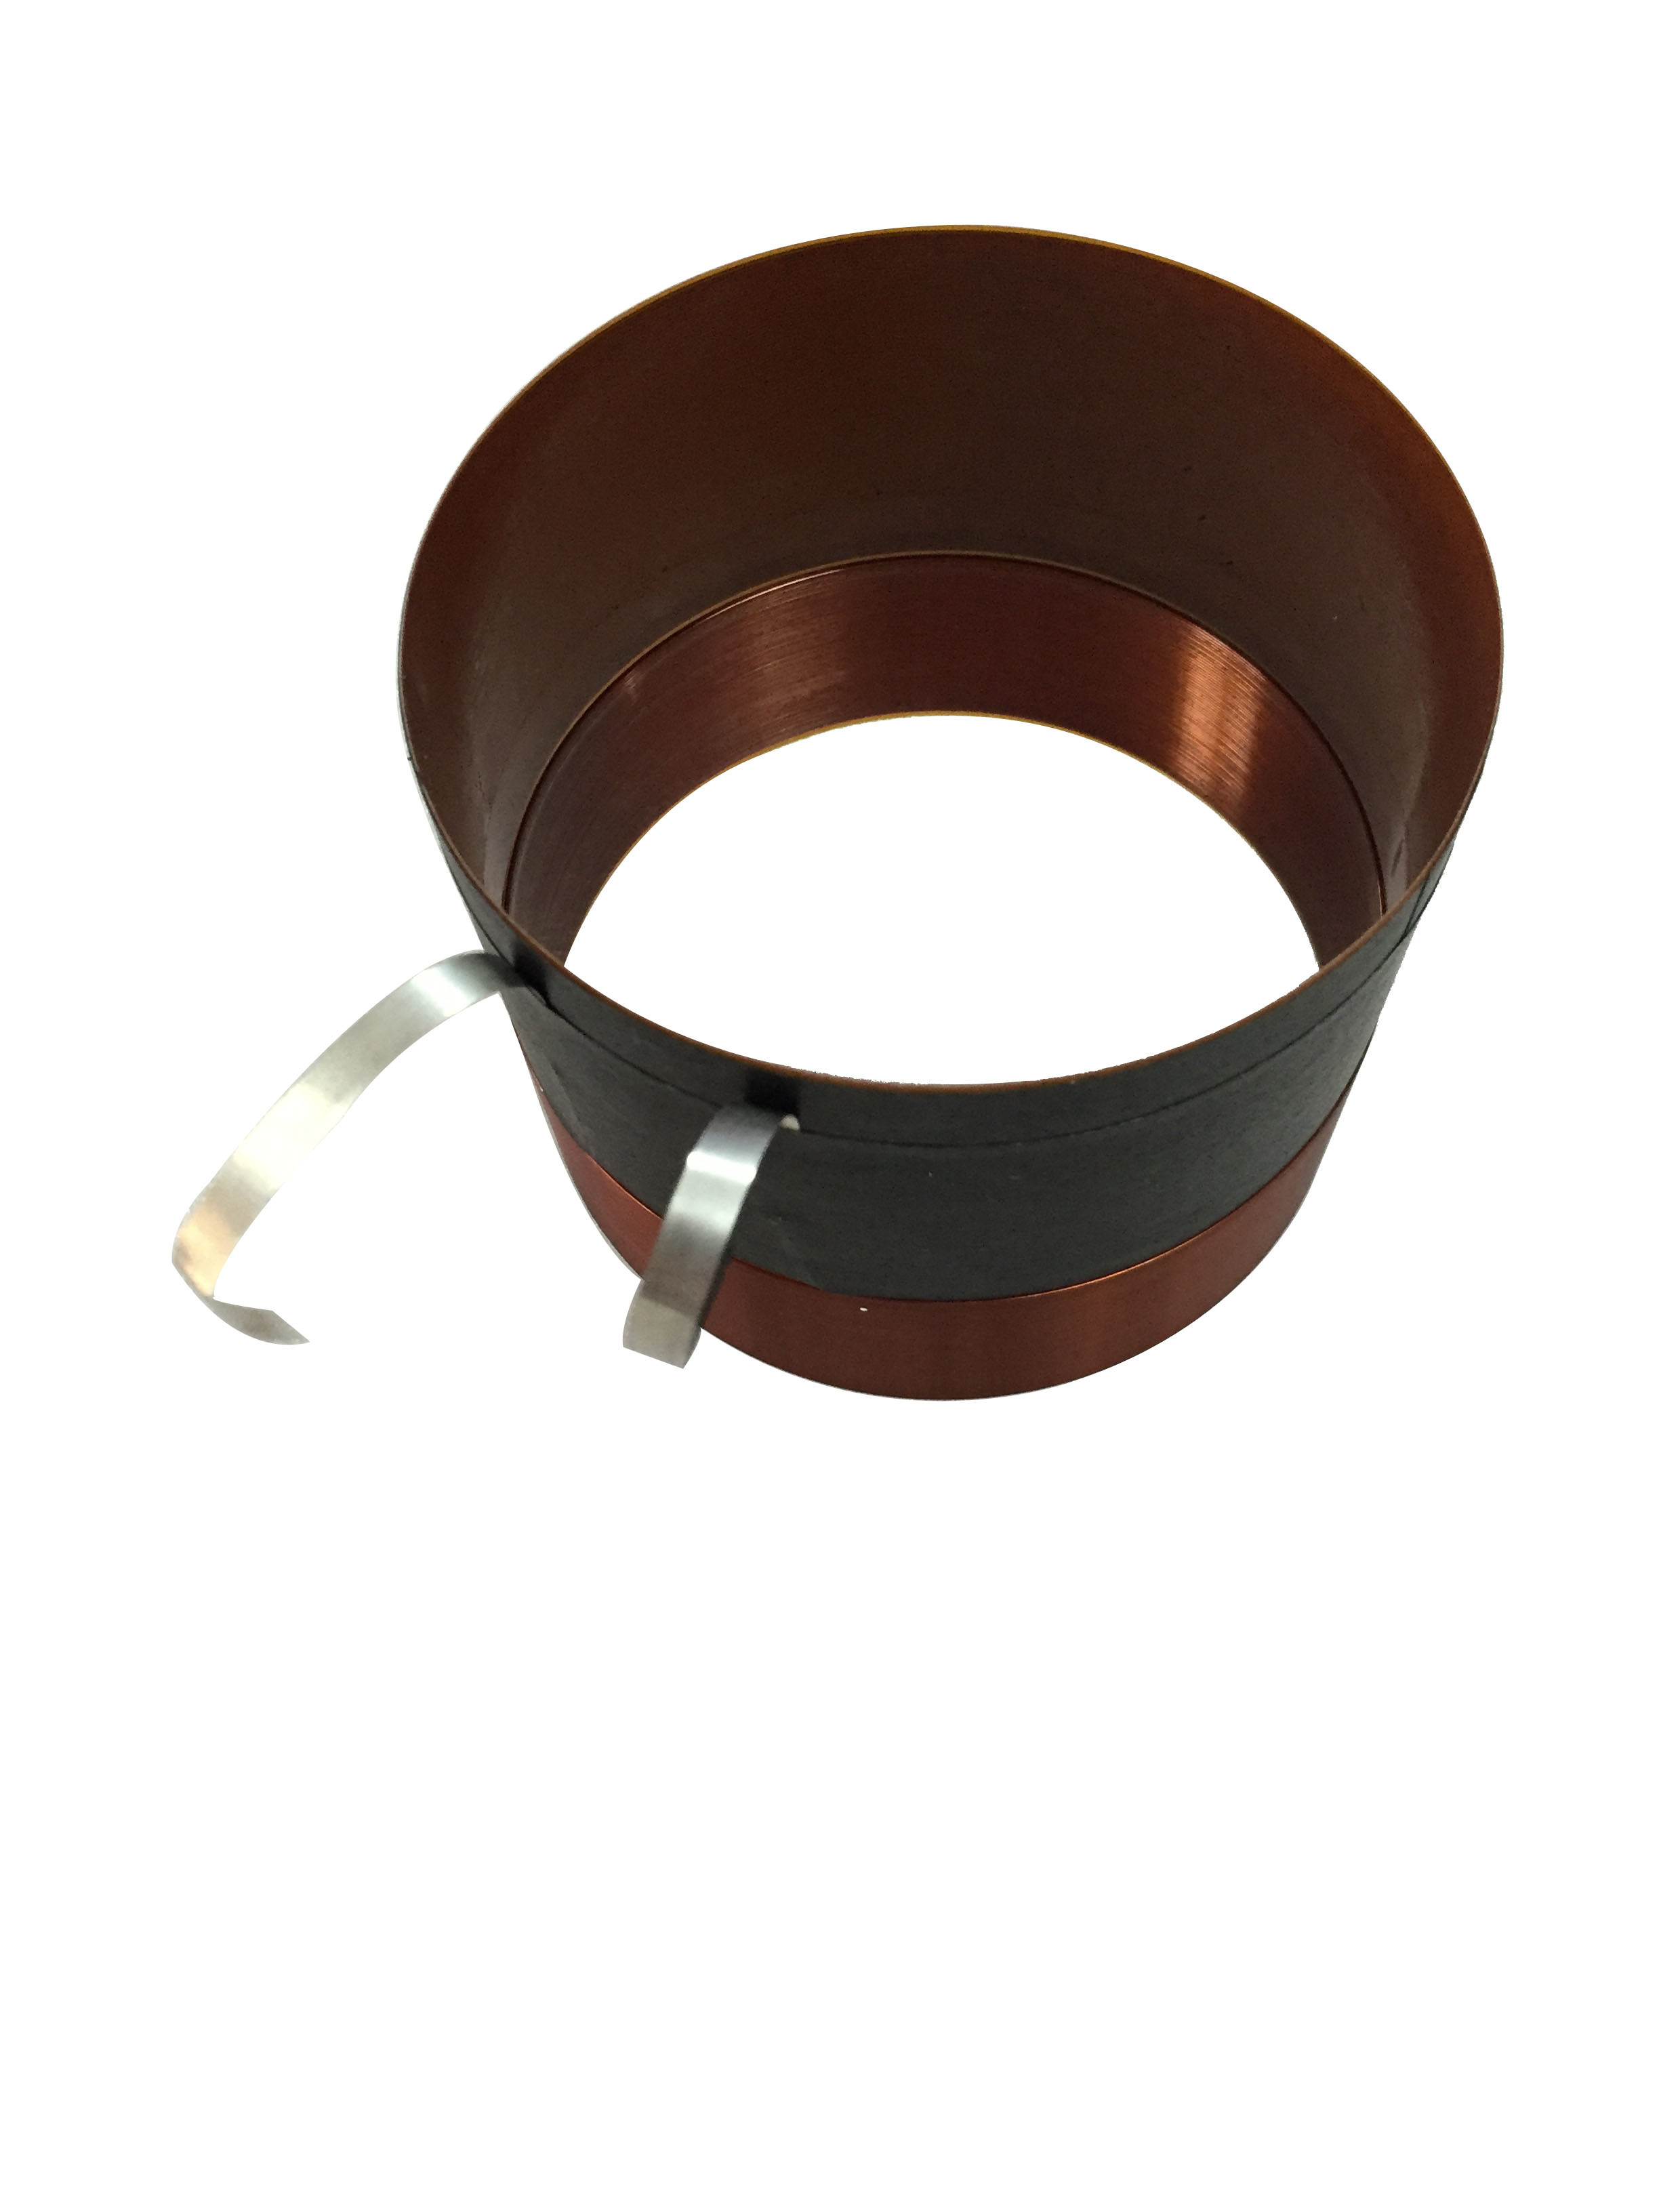 High Quality Lound Speaker Voice Coil - Speaker Parts